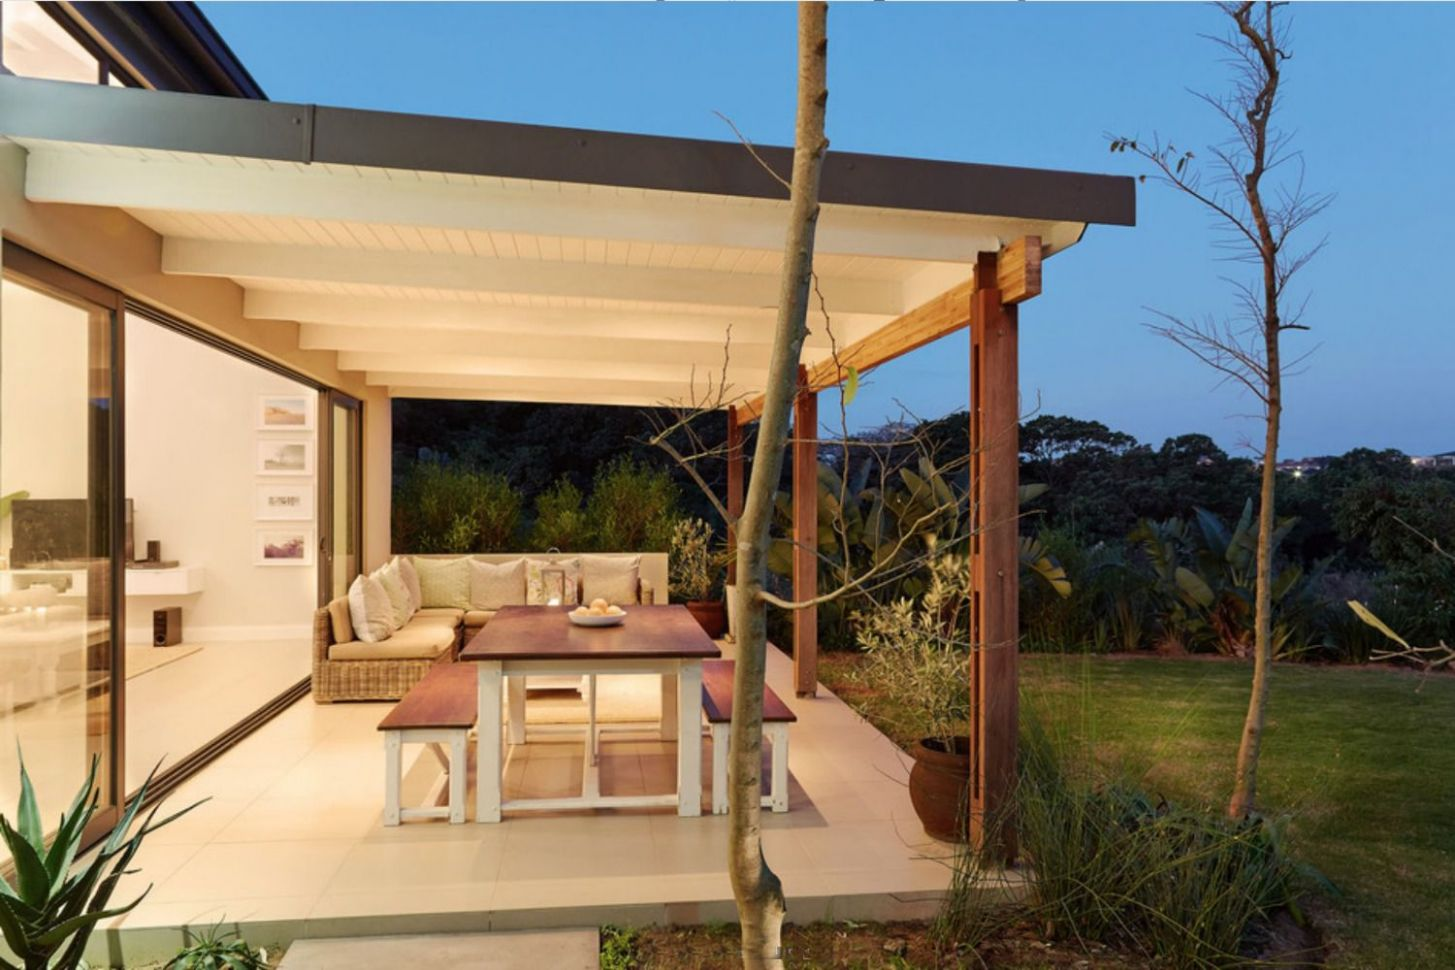 11 Stylish Covered Patio Ideas - backyard ideas roof